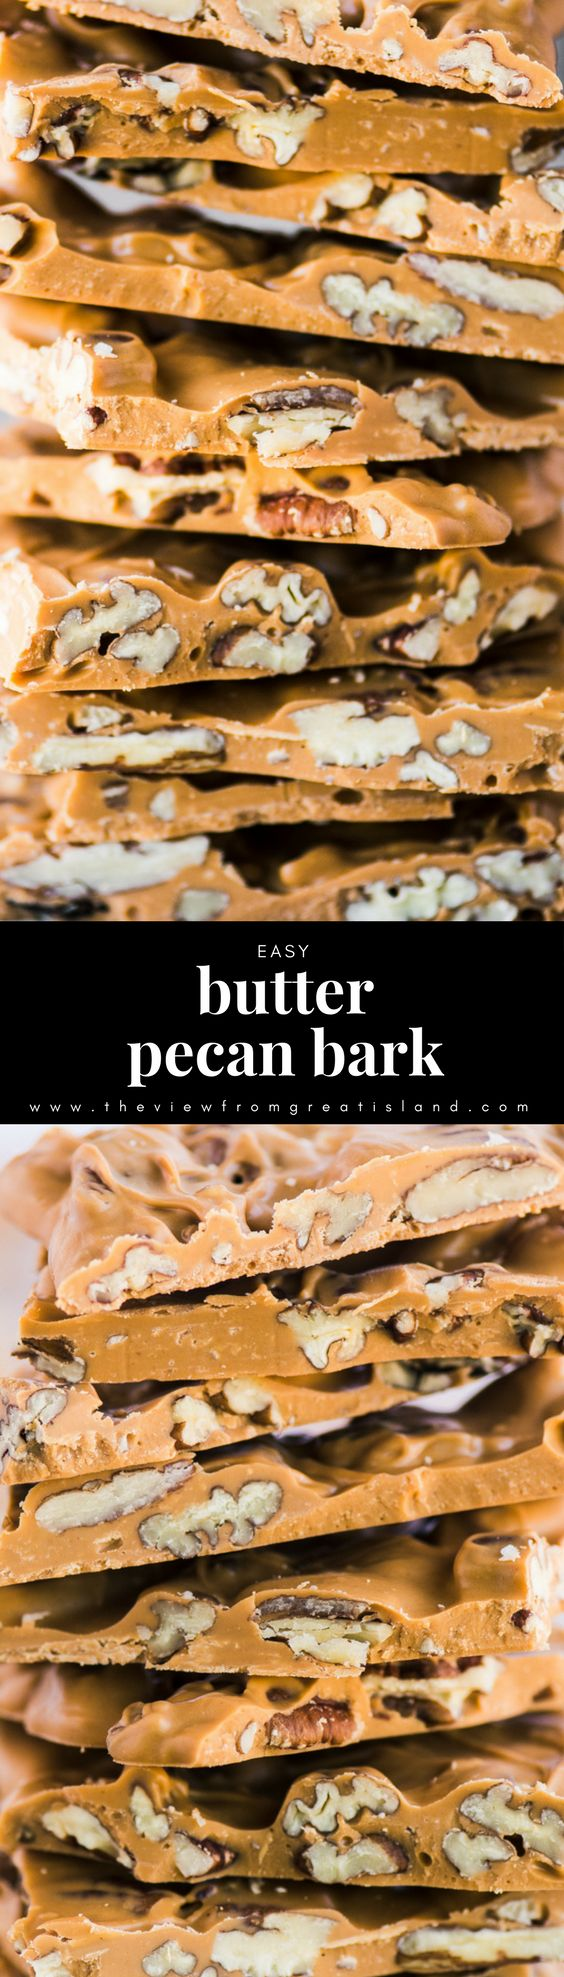 Easy Butter Pecan Bark